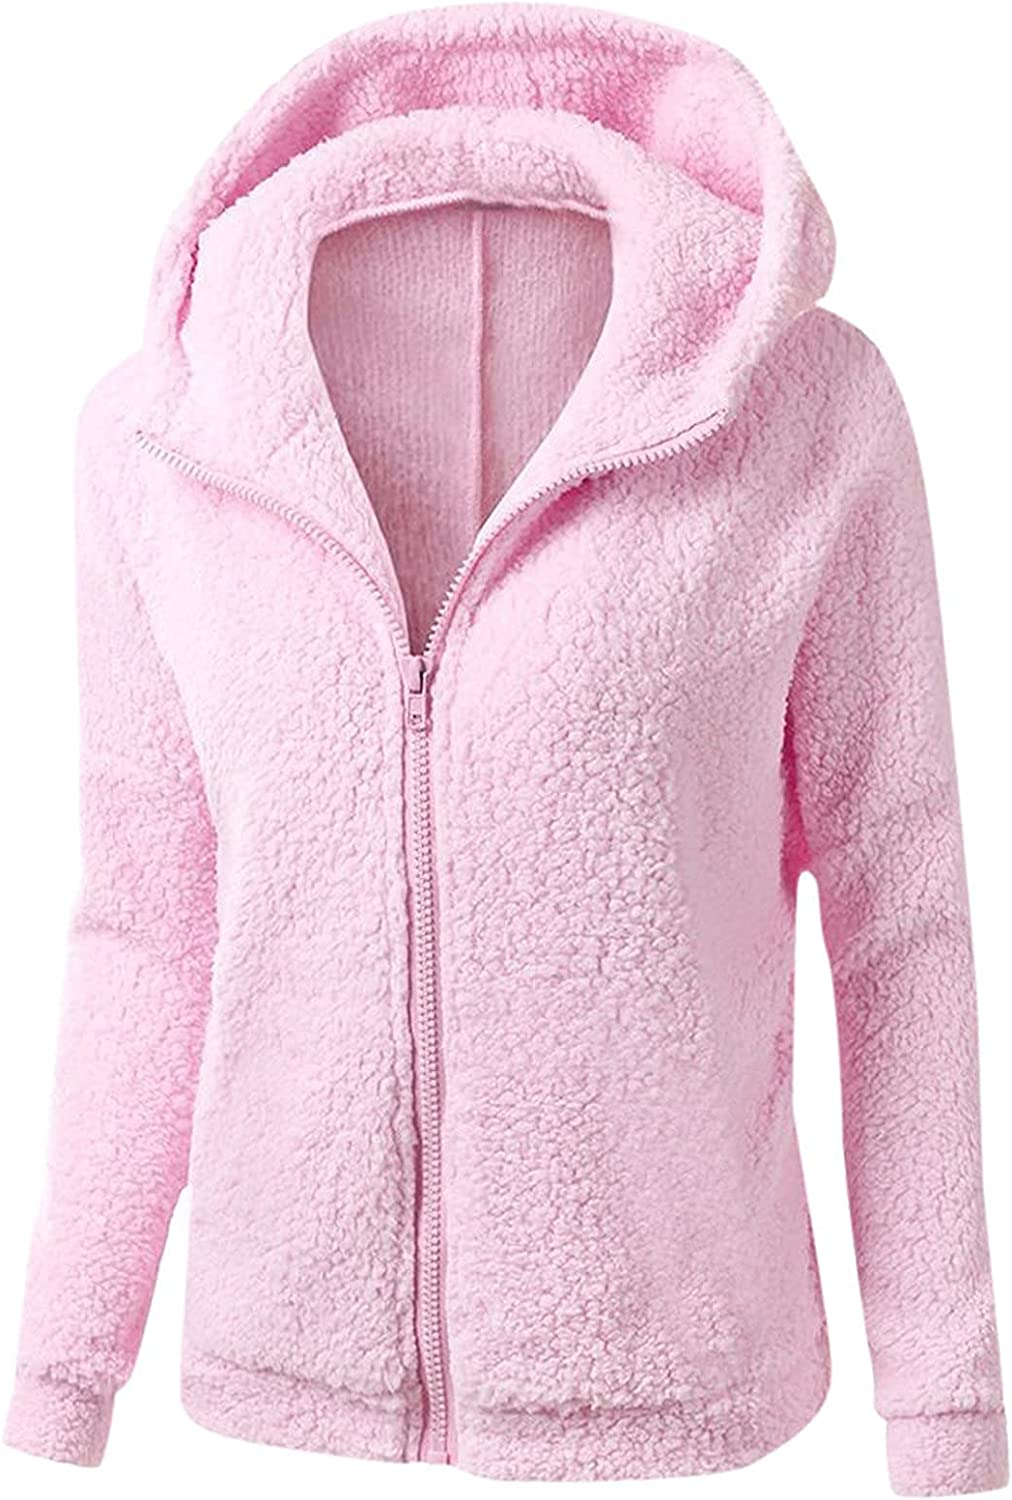 Kanzd Popular brand Zip Up Jackets Hoodies for Women Fleece Sol Fashion Trendy Free shipping New